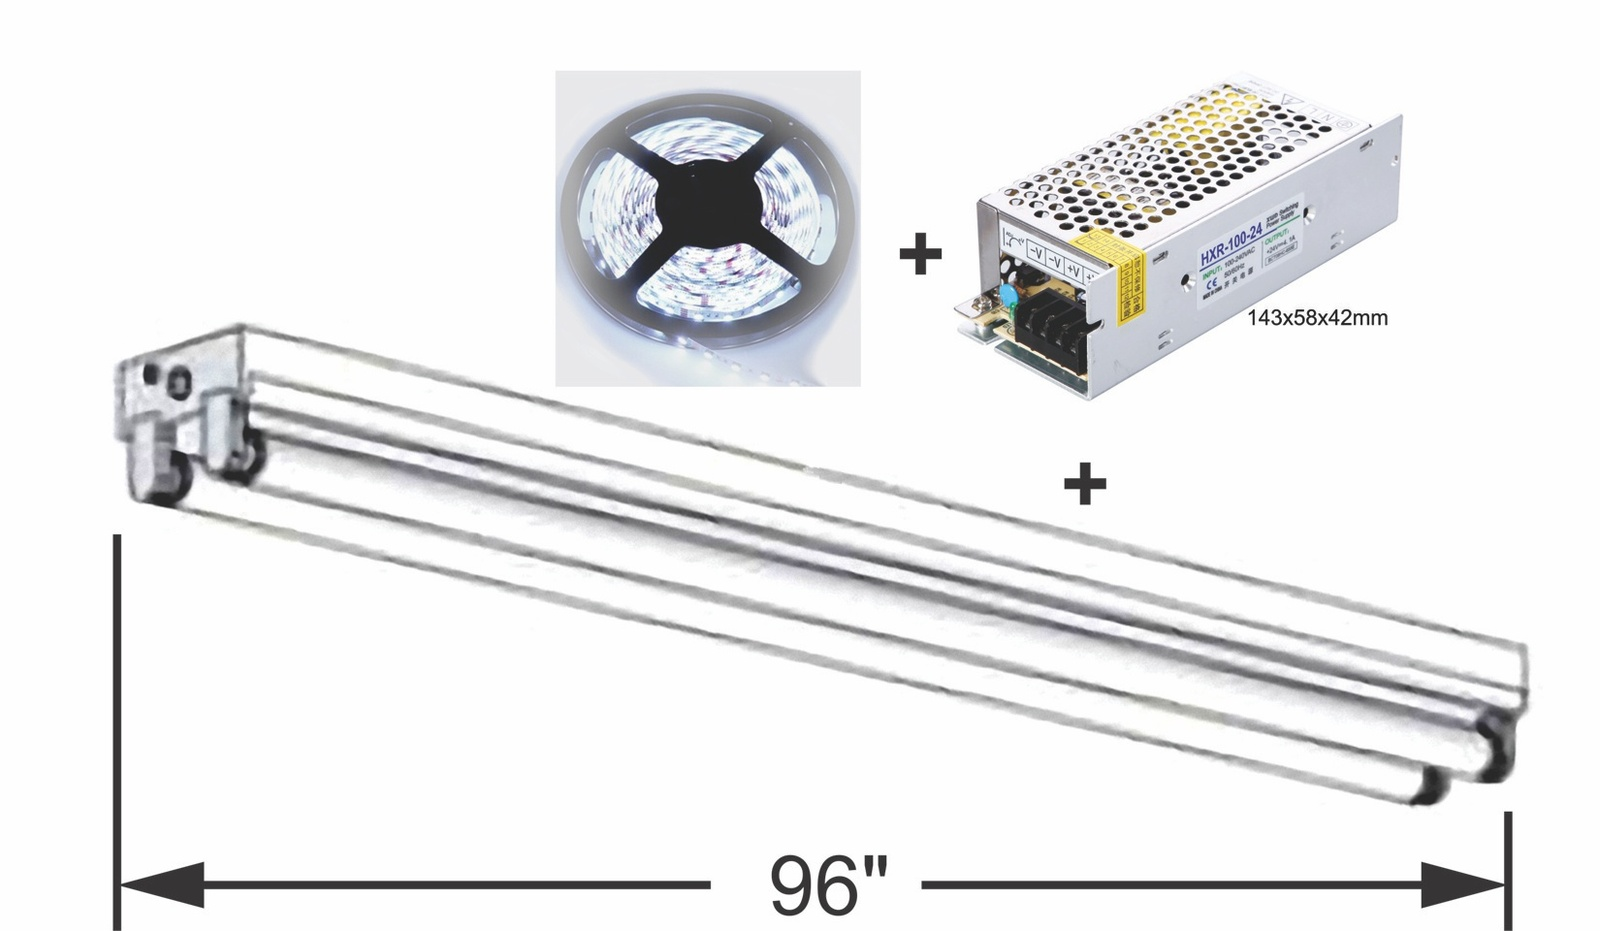 Kit: 100W Power Supply+ 2x 8' LED Strips, Bright White, Florescent Tube Retrofit